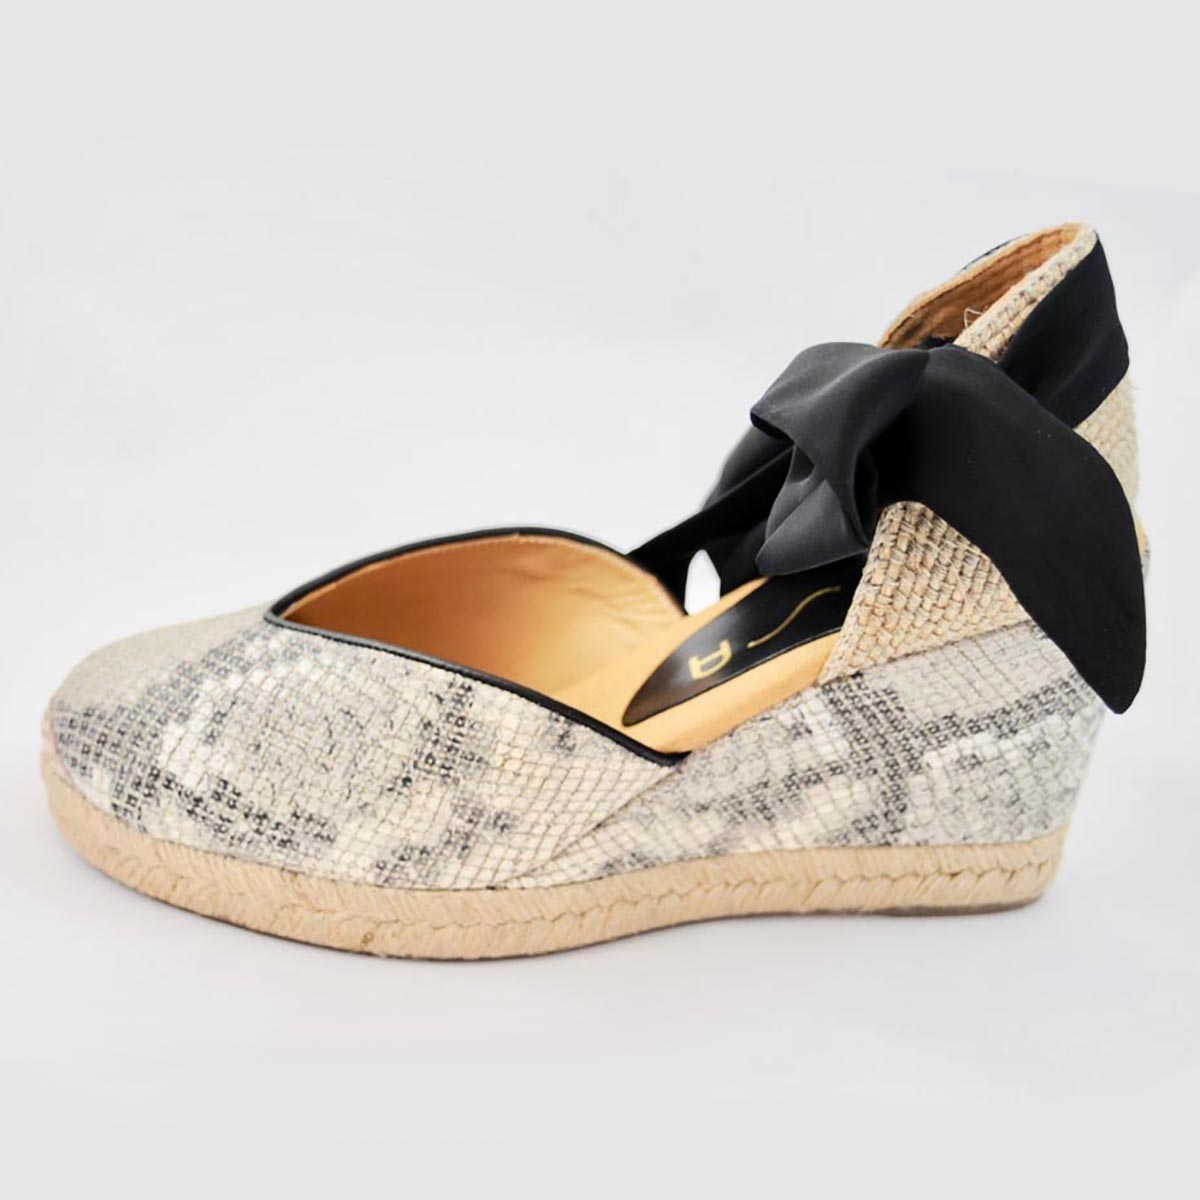 Unisa - Chufy Natural Wedge Espadrille